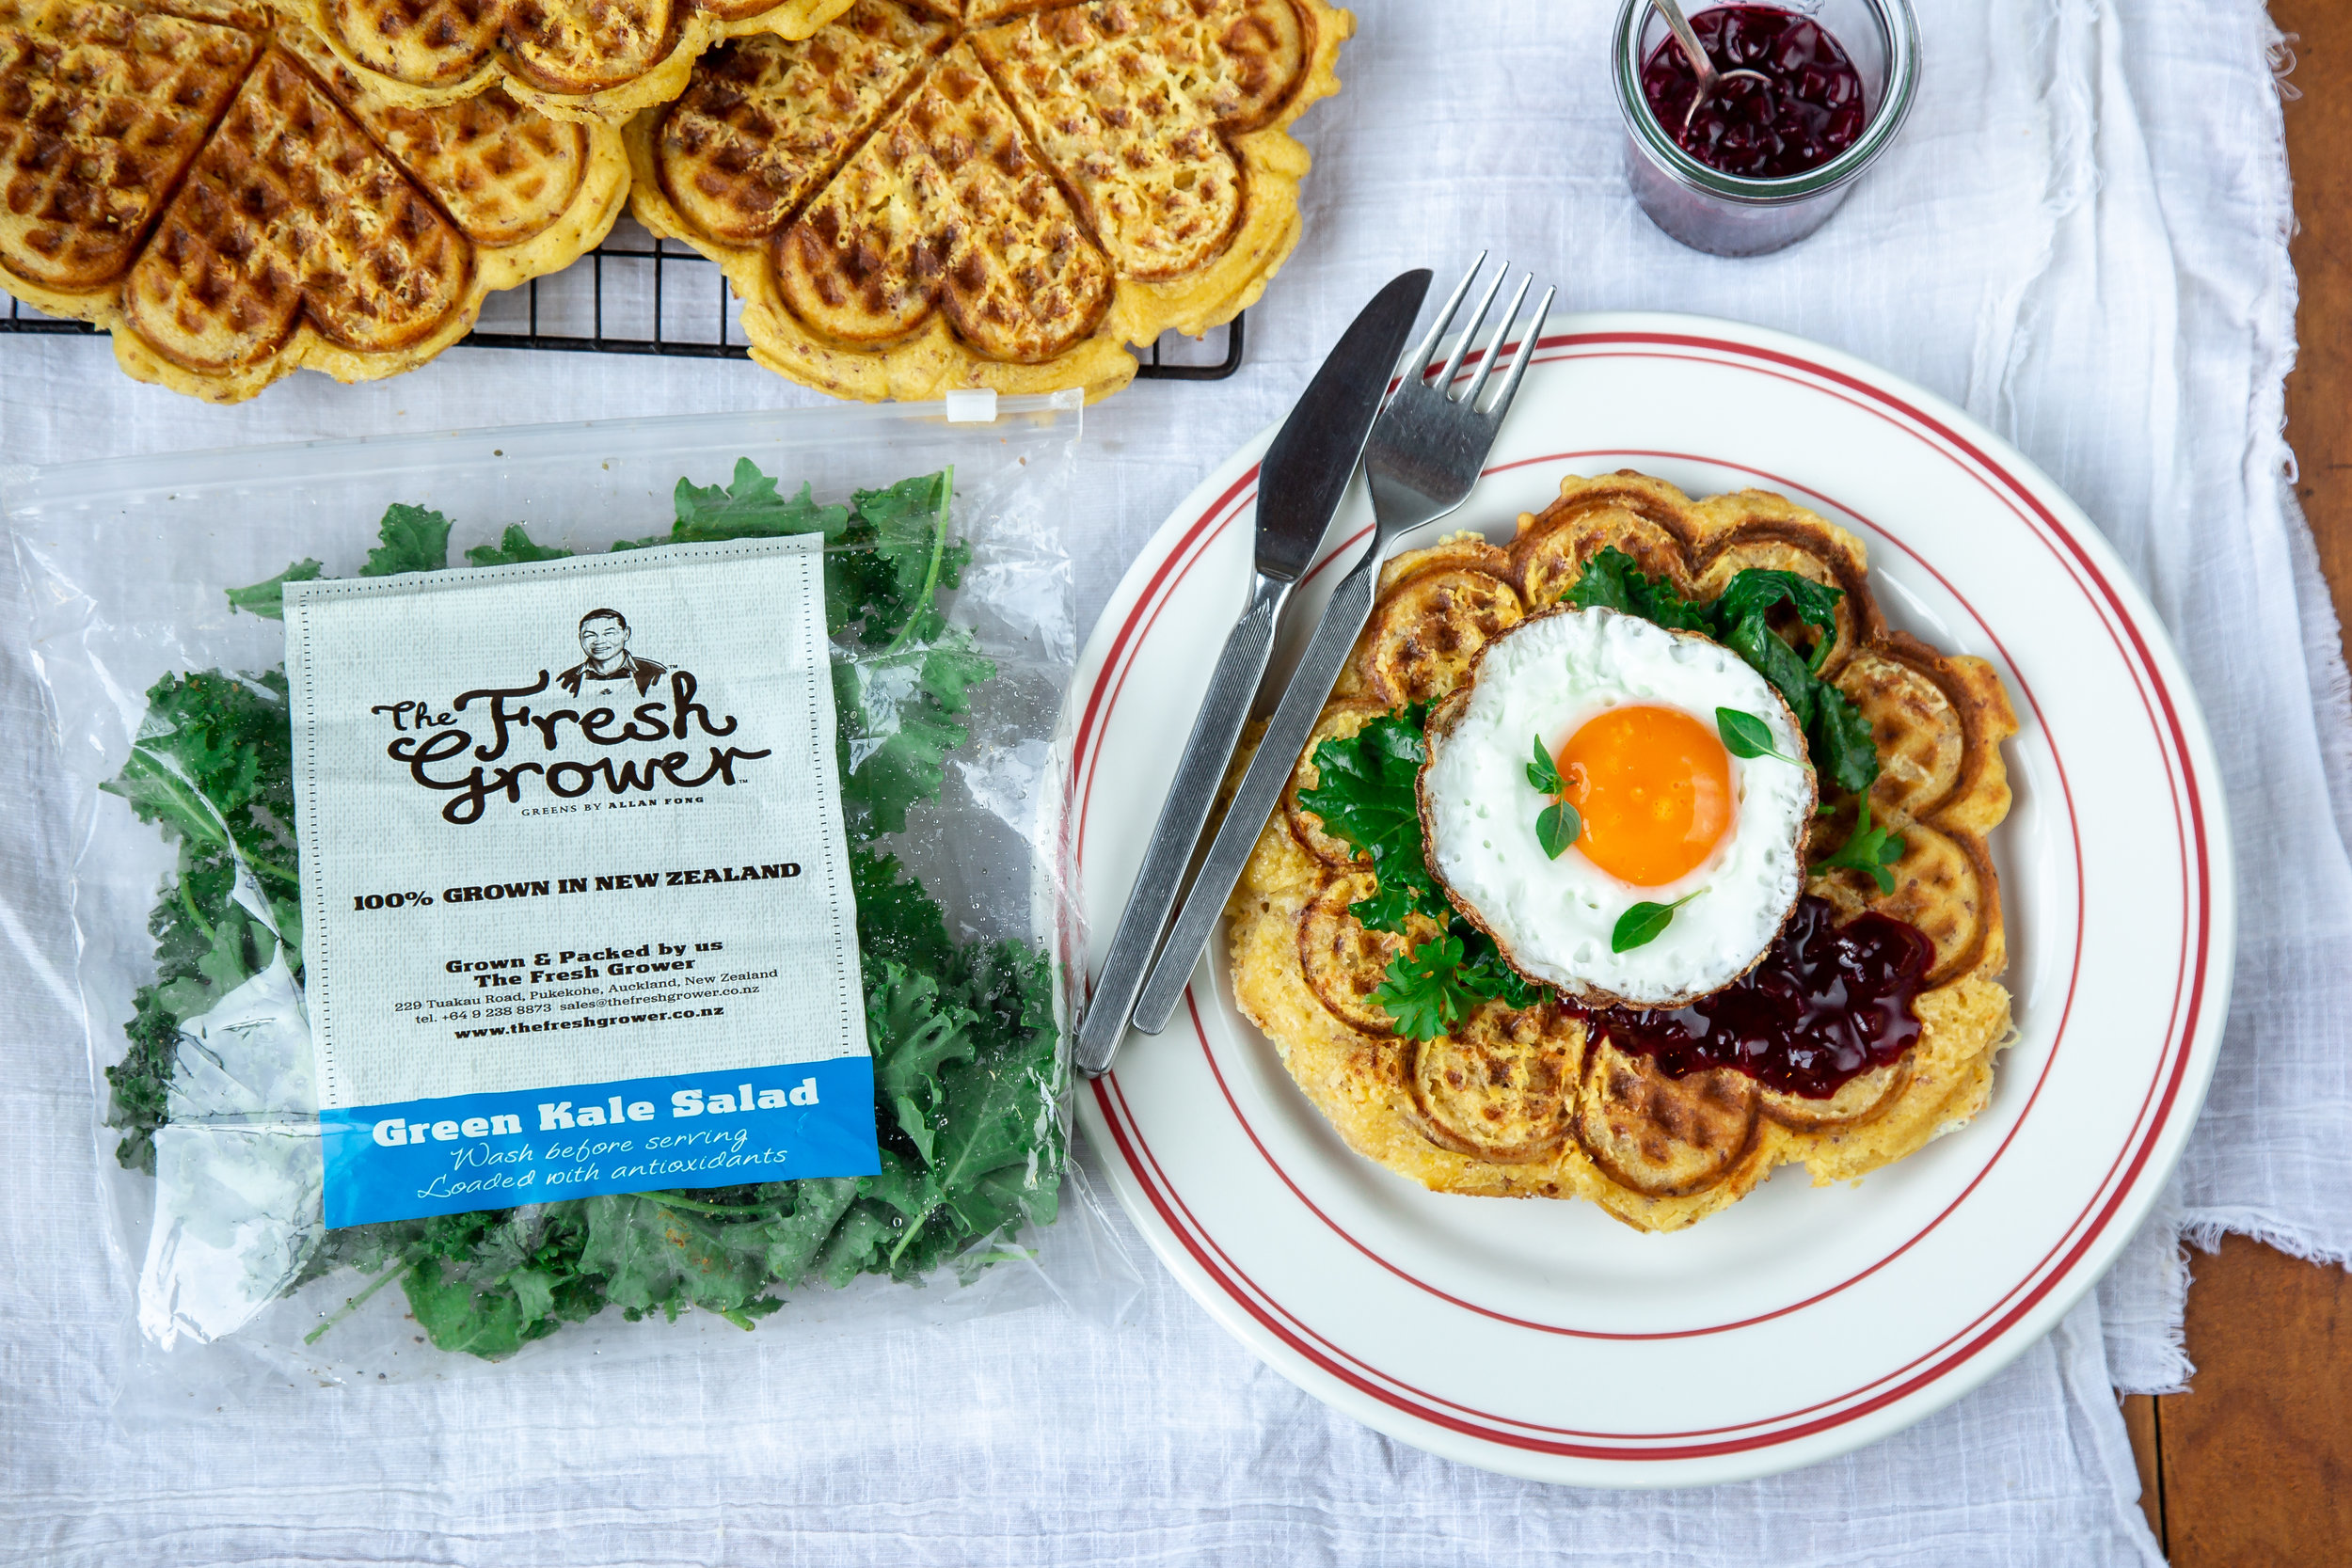 Chorizo & Cheddar Breakfast Waffles, The Fresh Grower.jpg